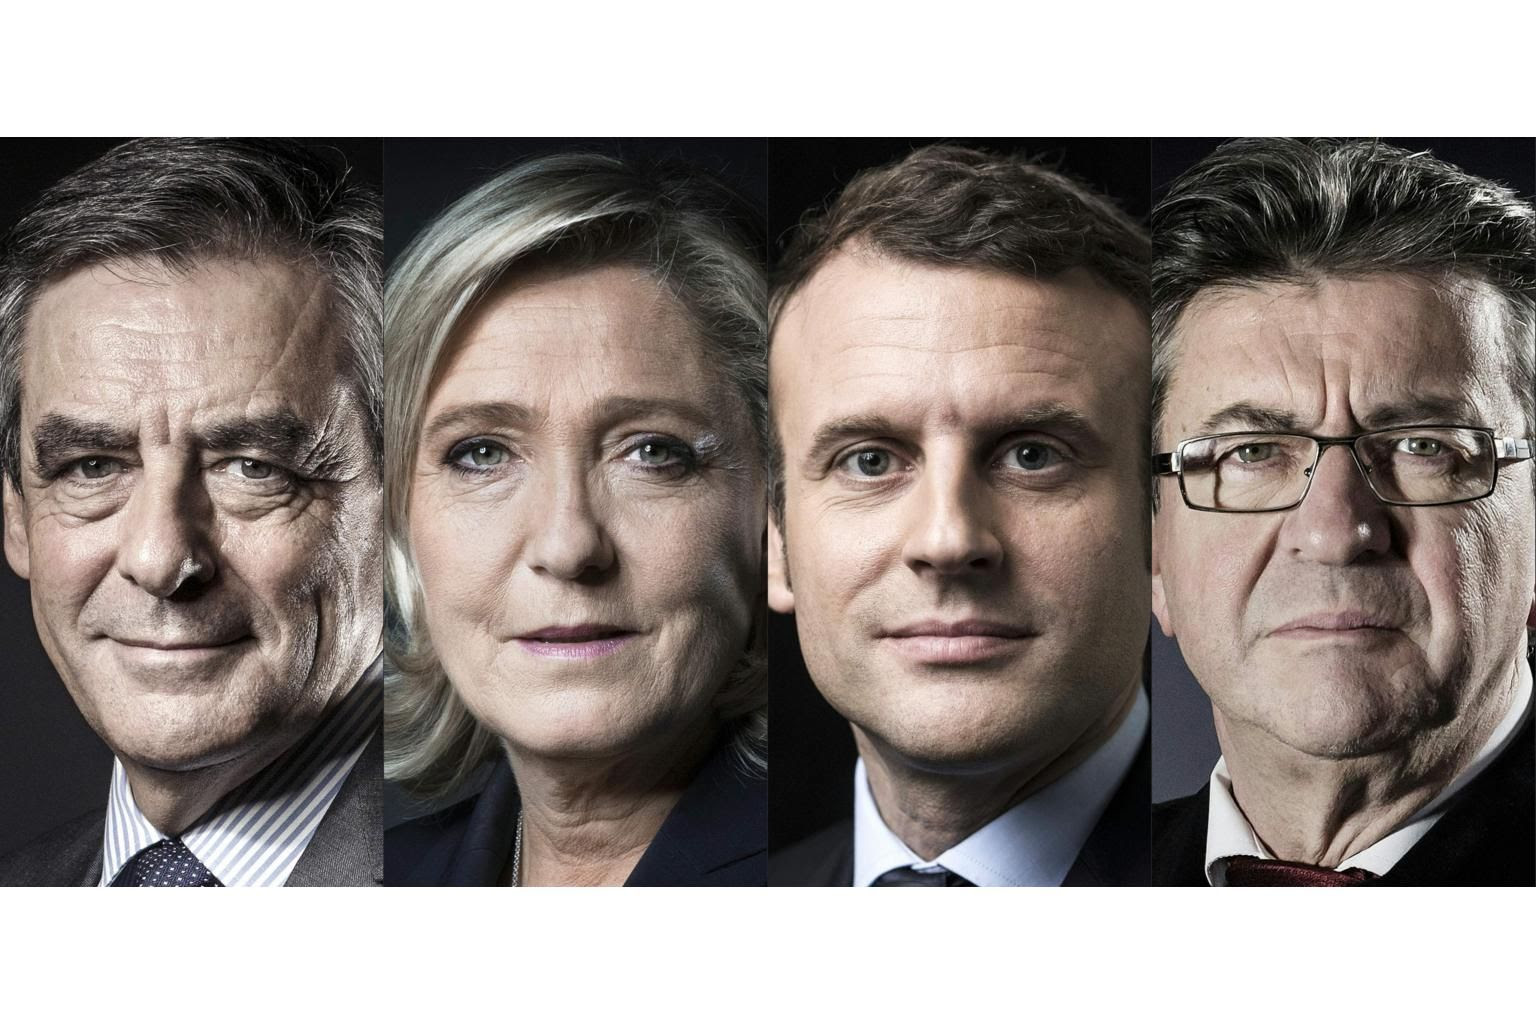 http://www.thetrendler.com/wp-content/uploads/2017/04/frenchelection_0.jpg